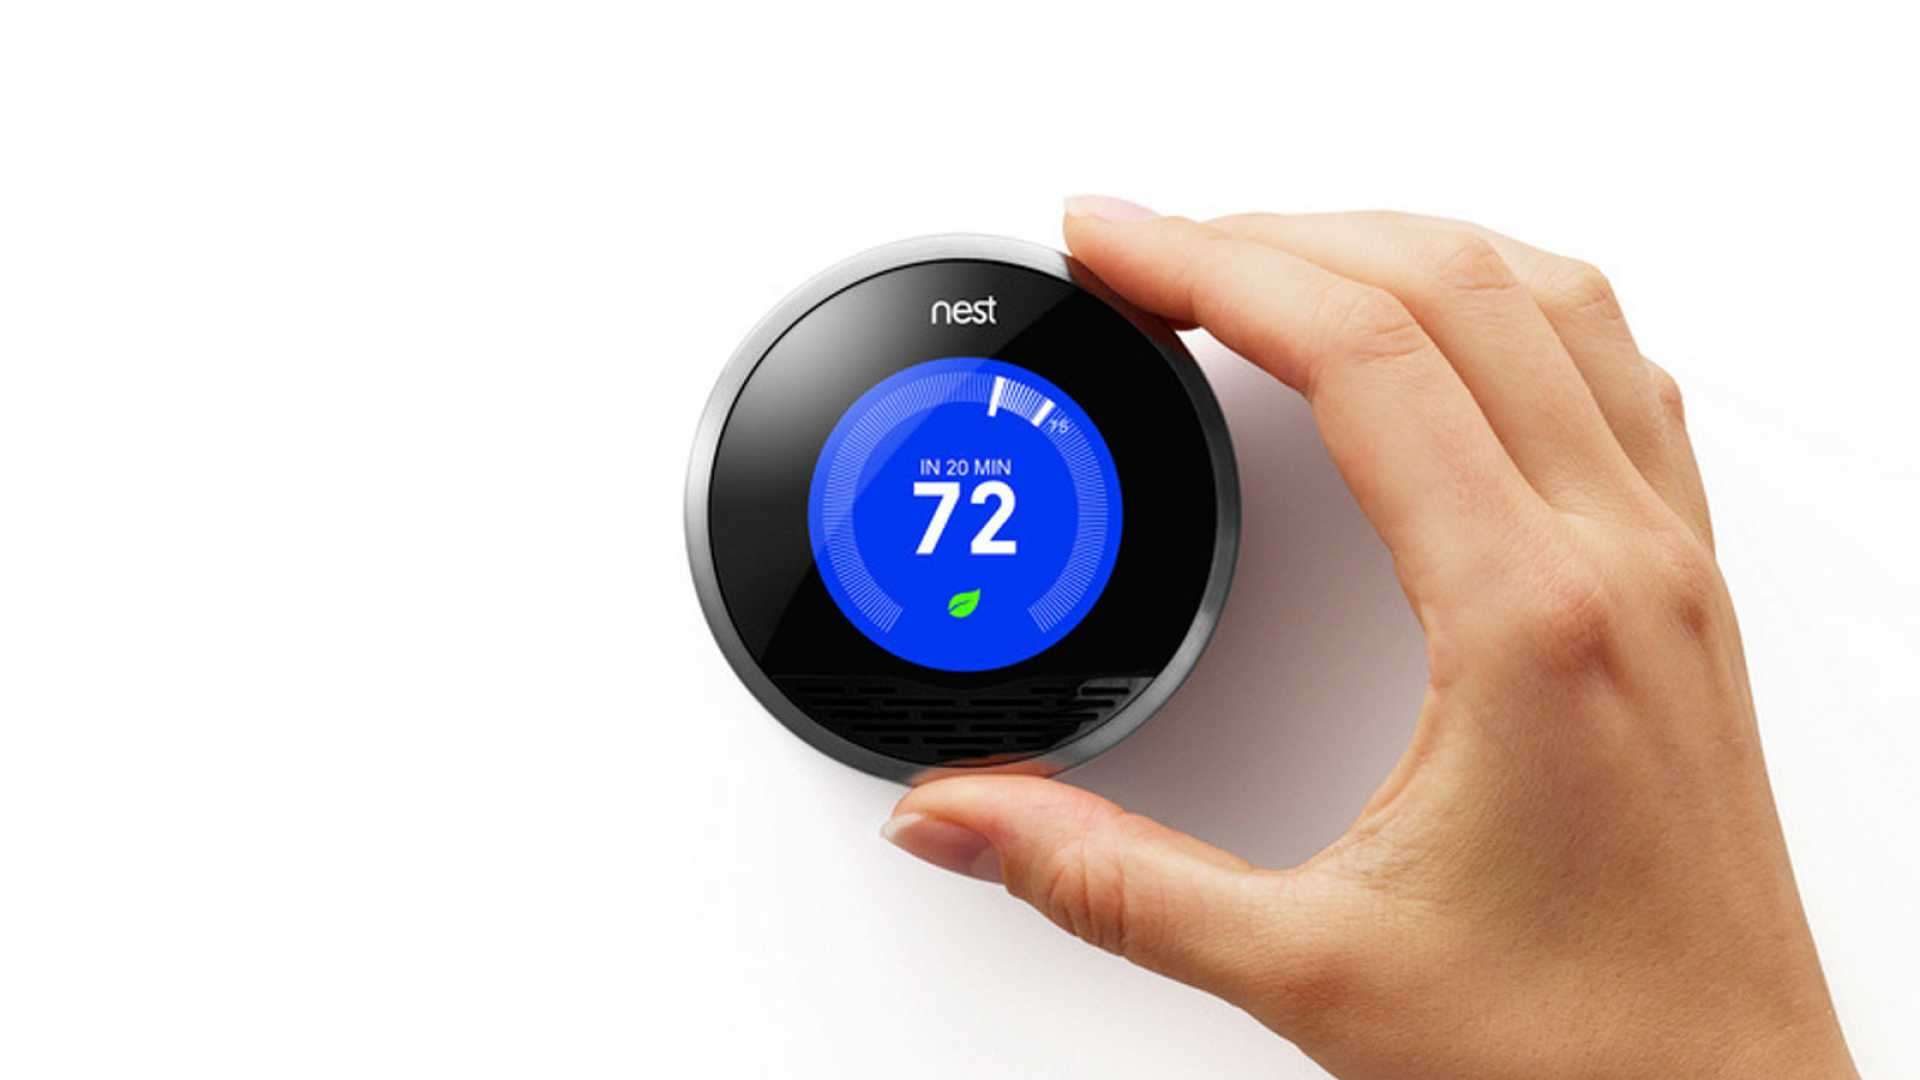 Nest's $3.2 Billion Price Tag Means One Thing: Hello, Hardware